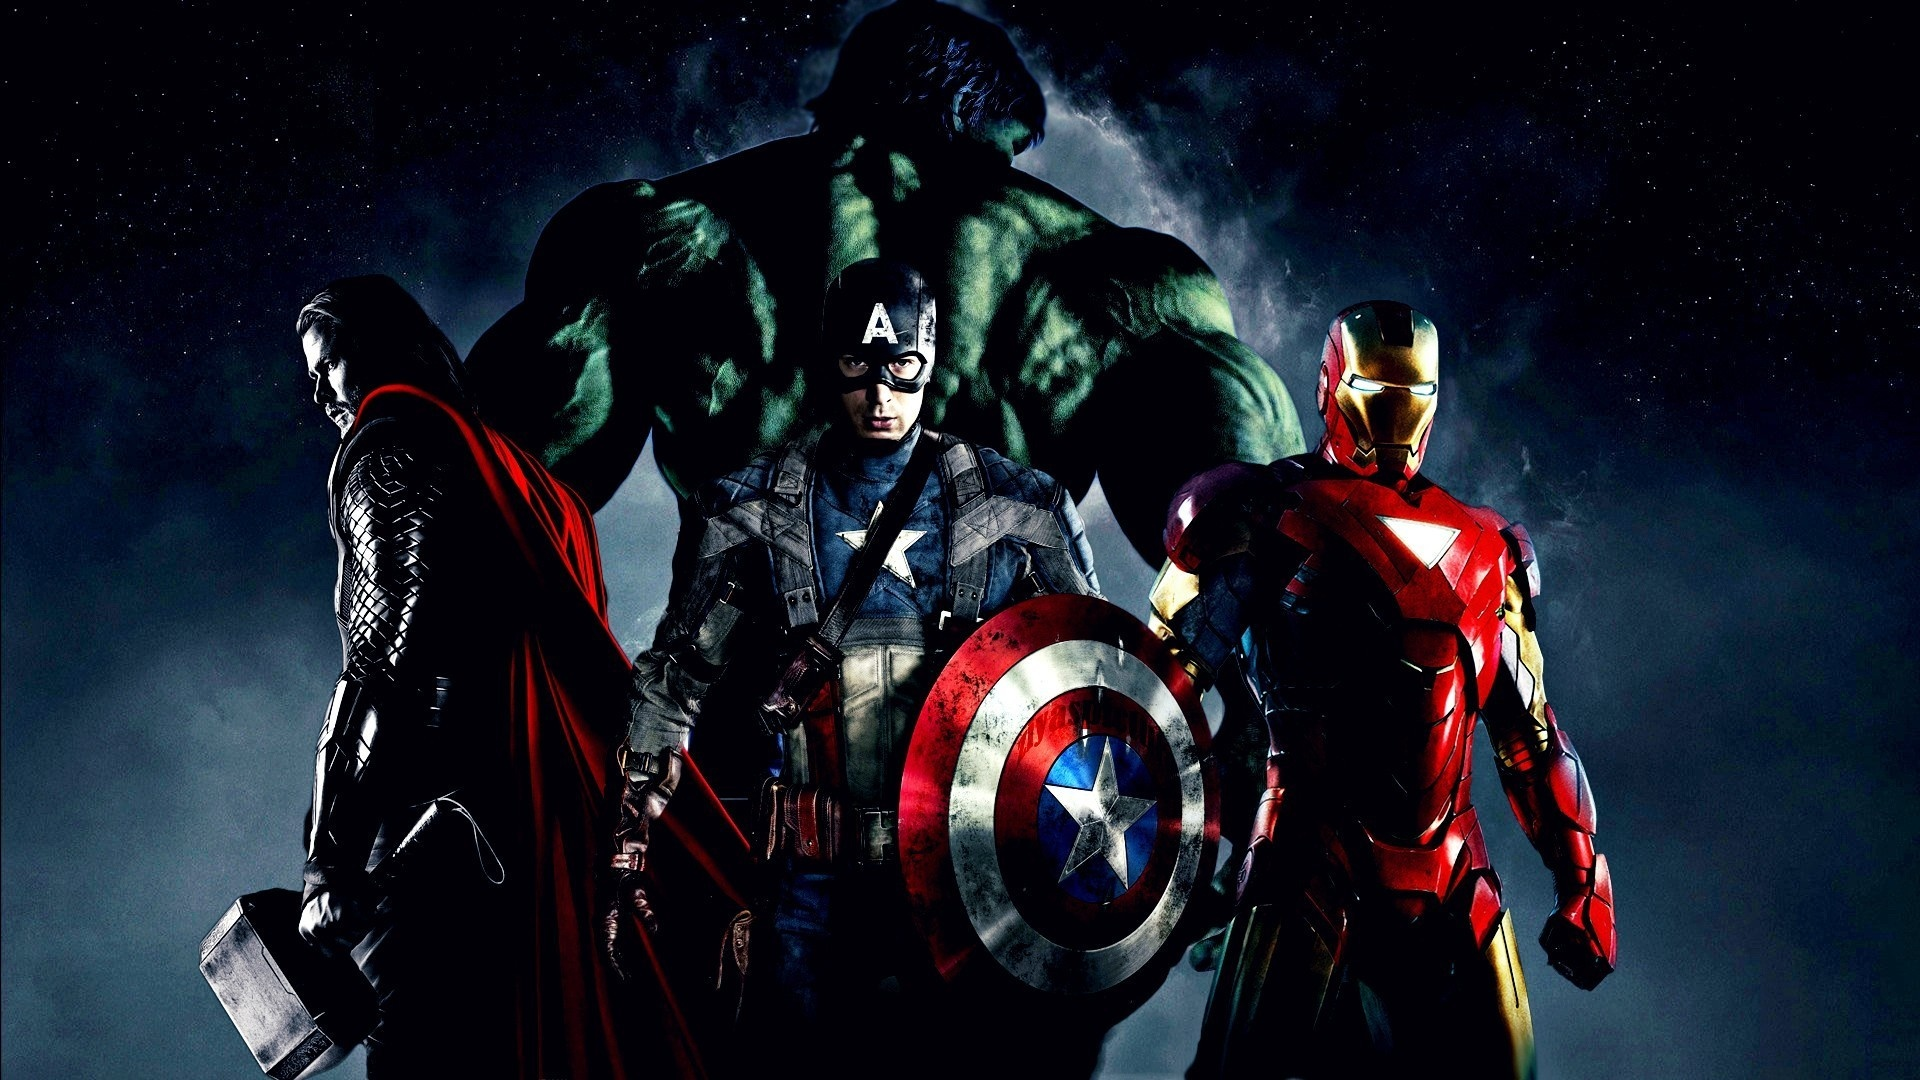 wallpaper the avengers 2012 movie 1920x1080 full hd picture, image